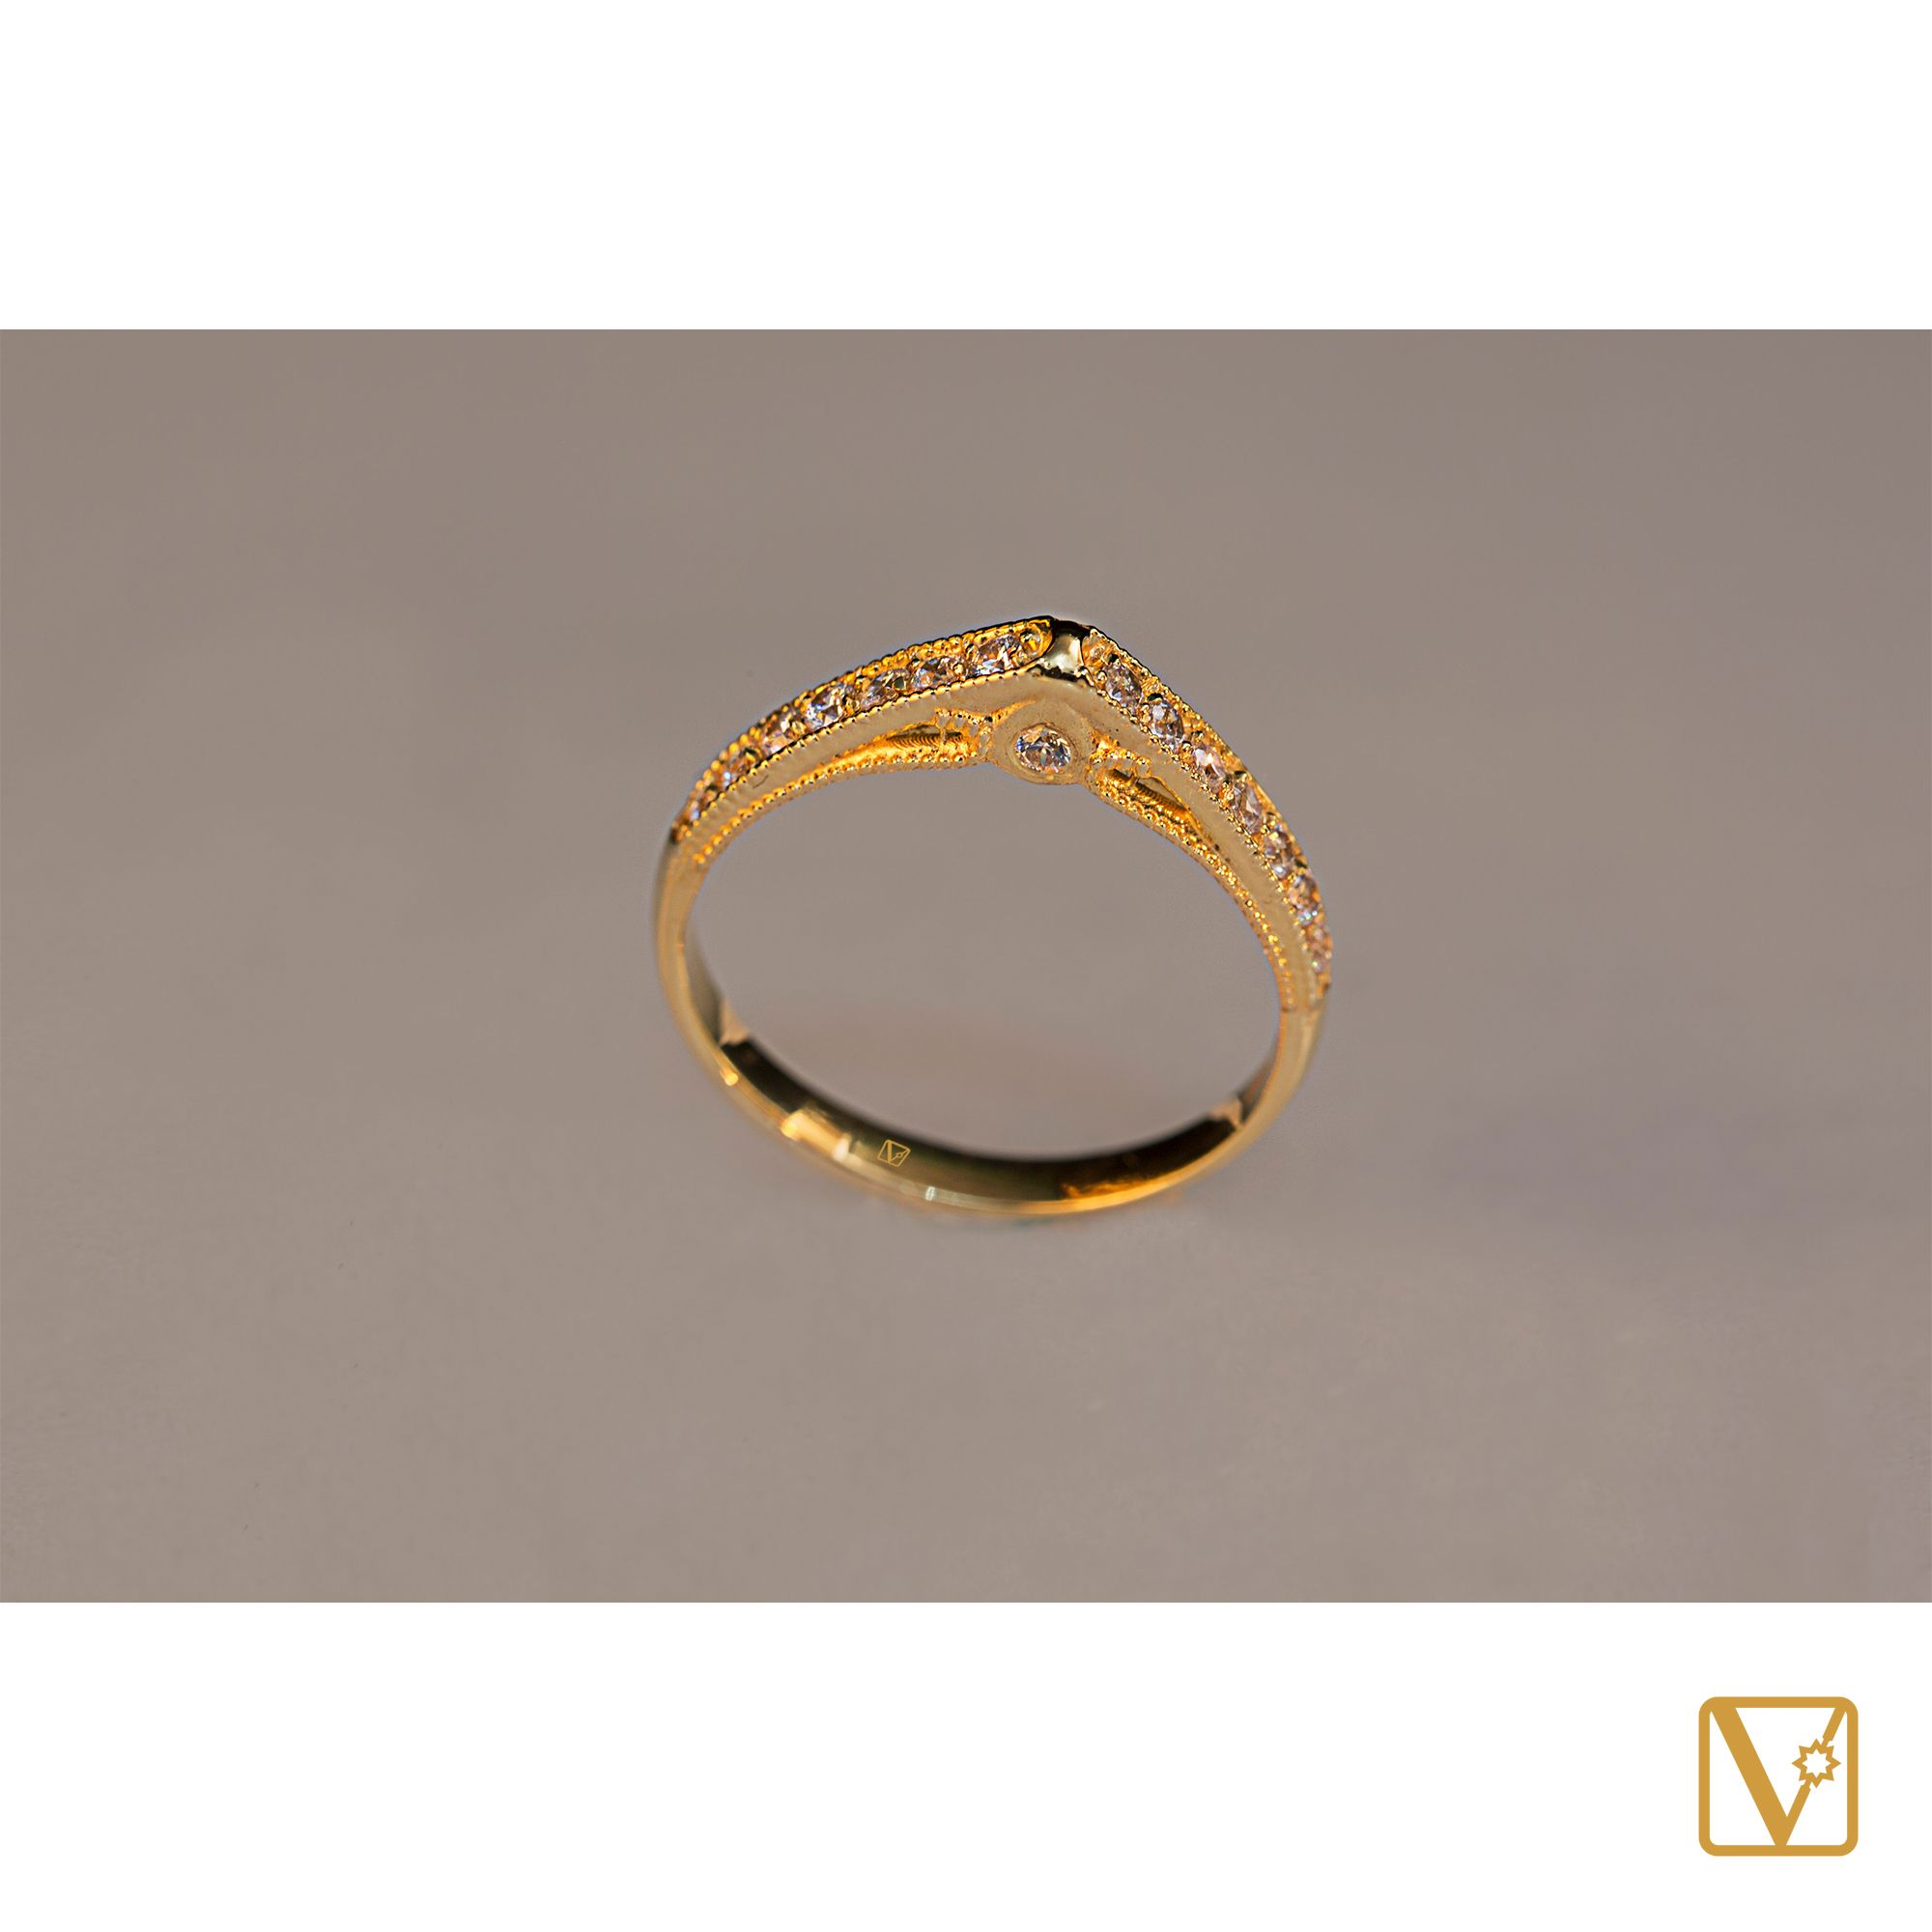 Vg R16a 302 3020 Price715000t Gold 750 1g 172000t